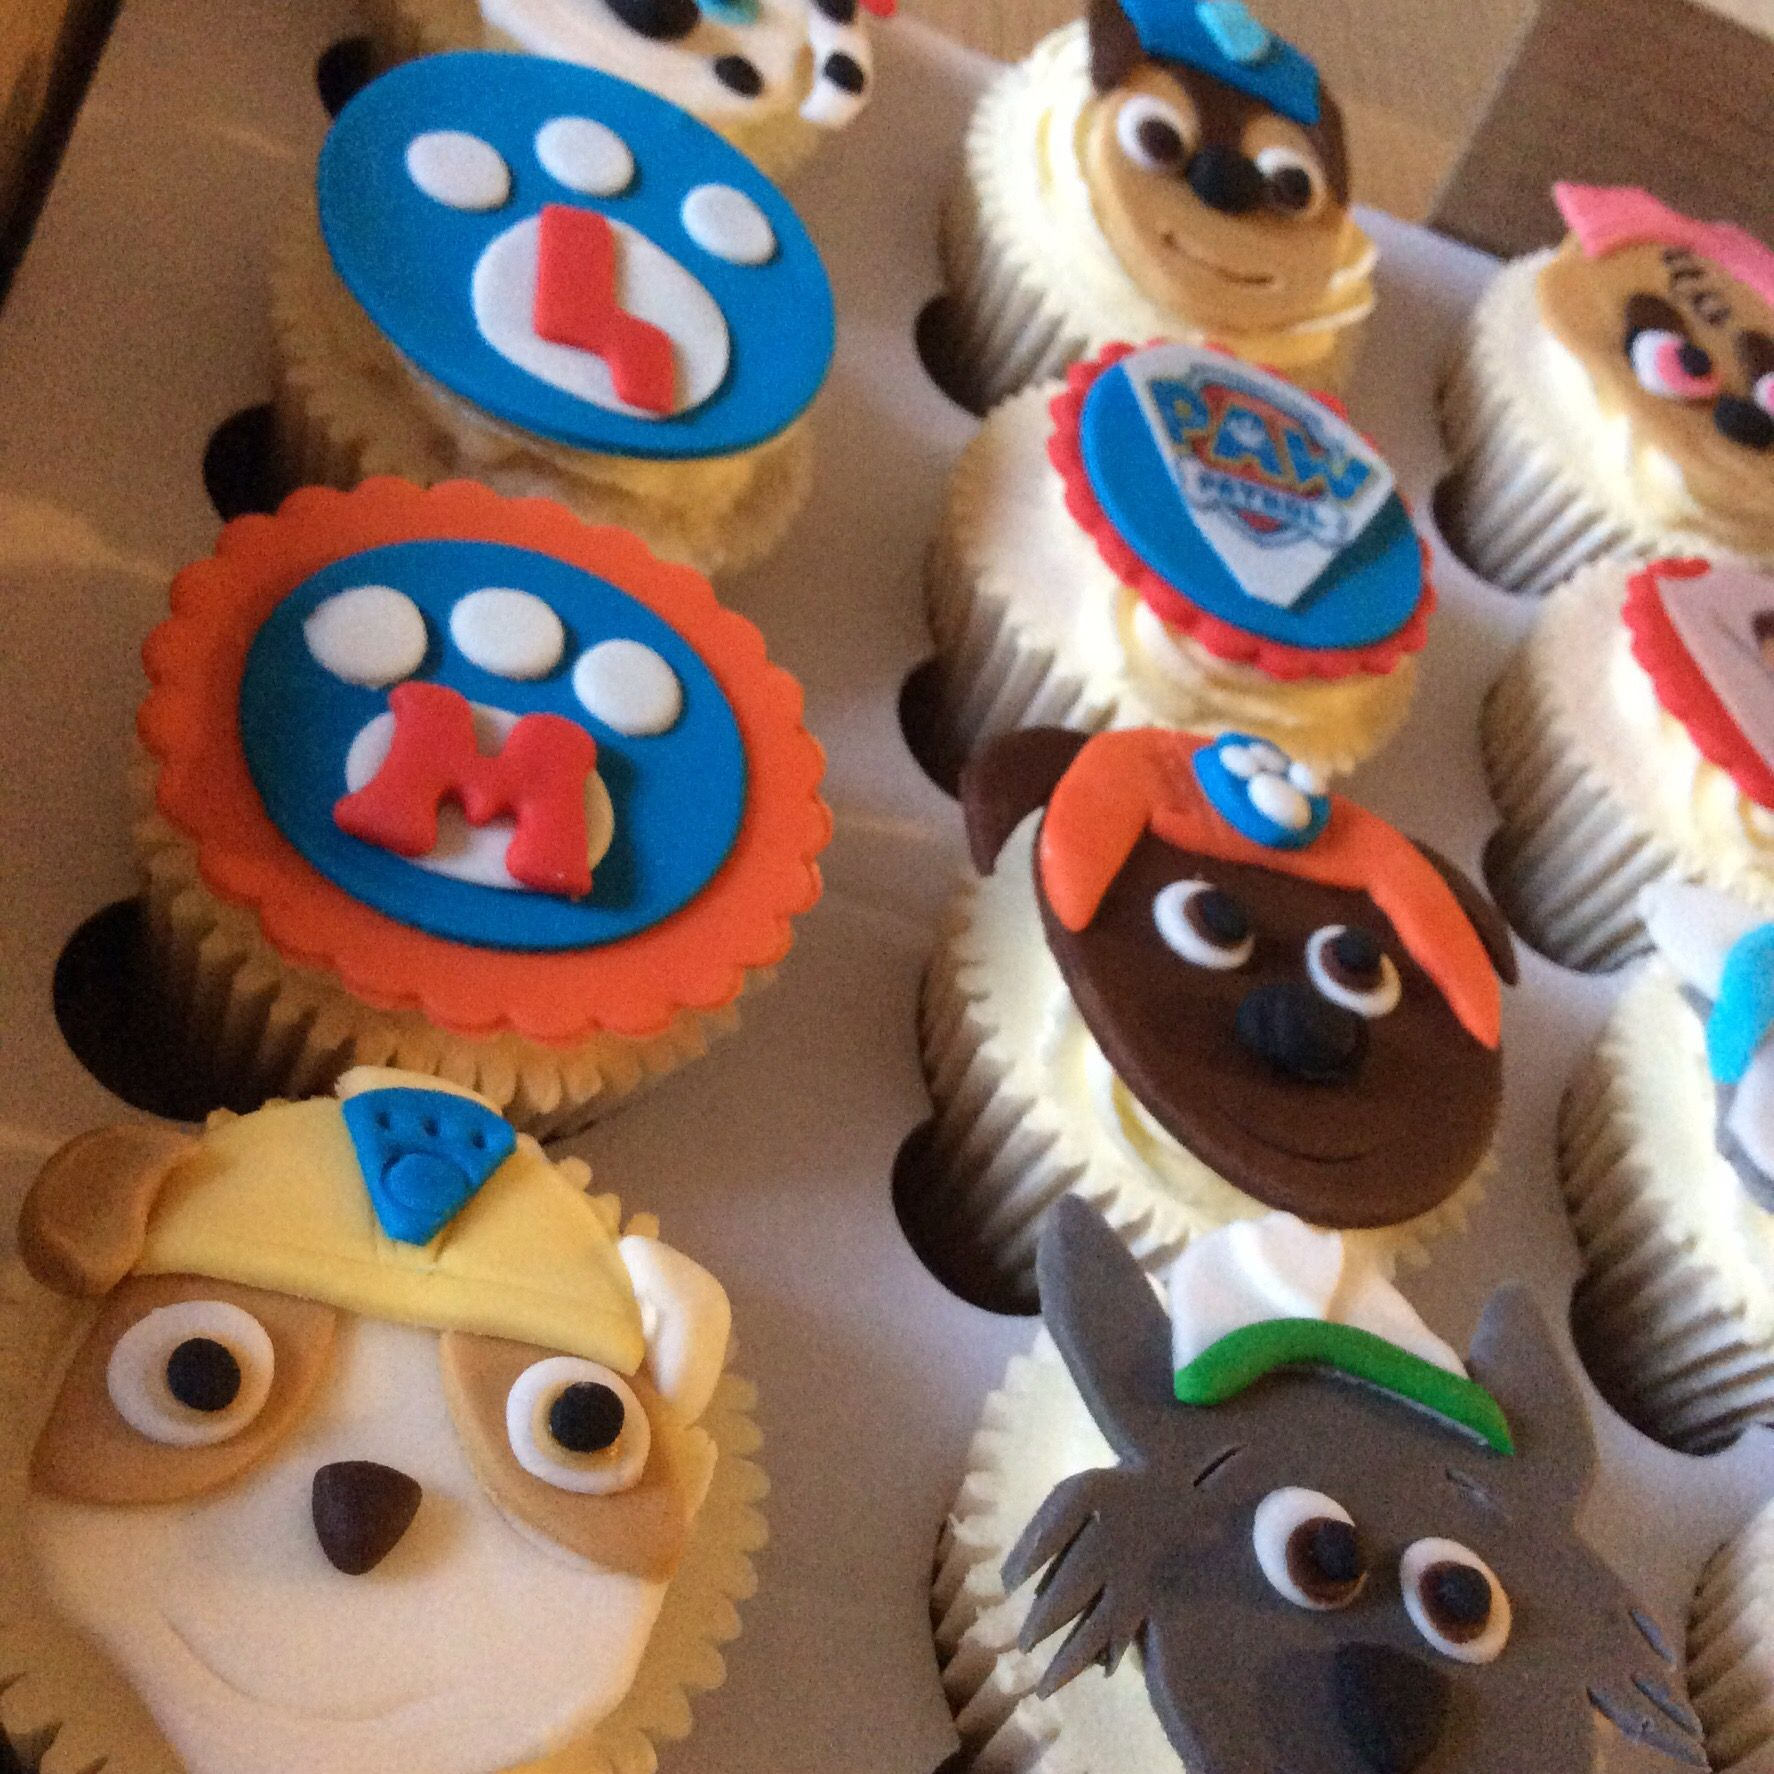 My little boy loved these Paw Patrol cupcakes I made these cute